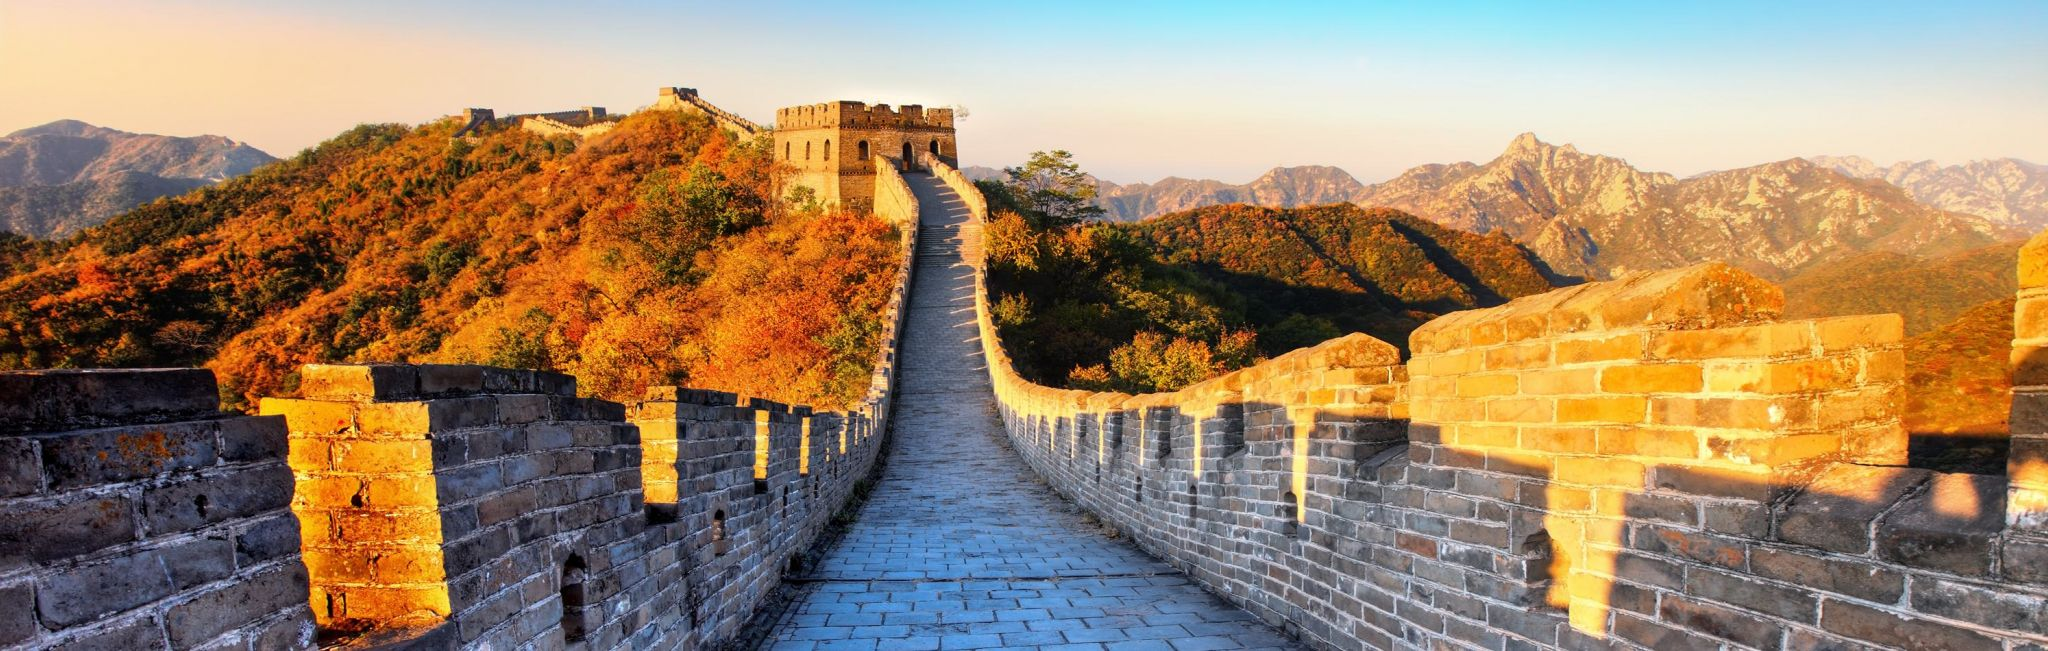 China Tours Vacation Packages Amp Luxury Travel 2018 2019